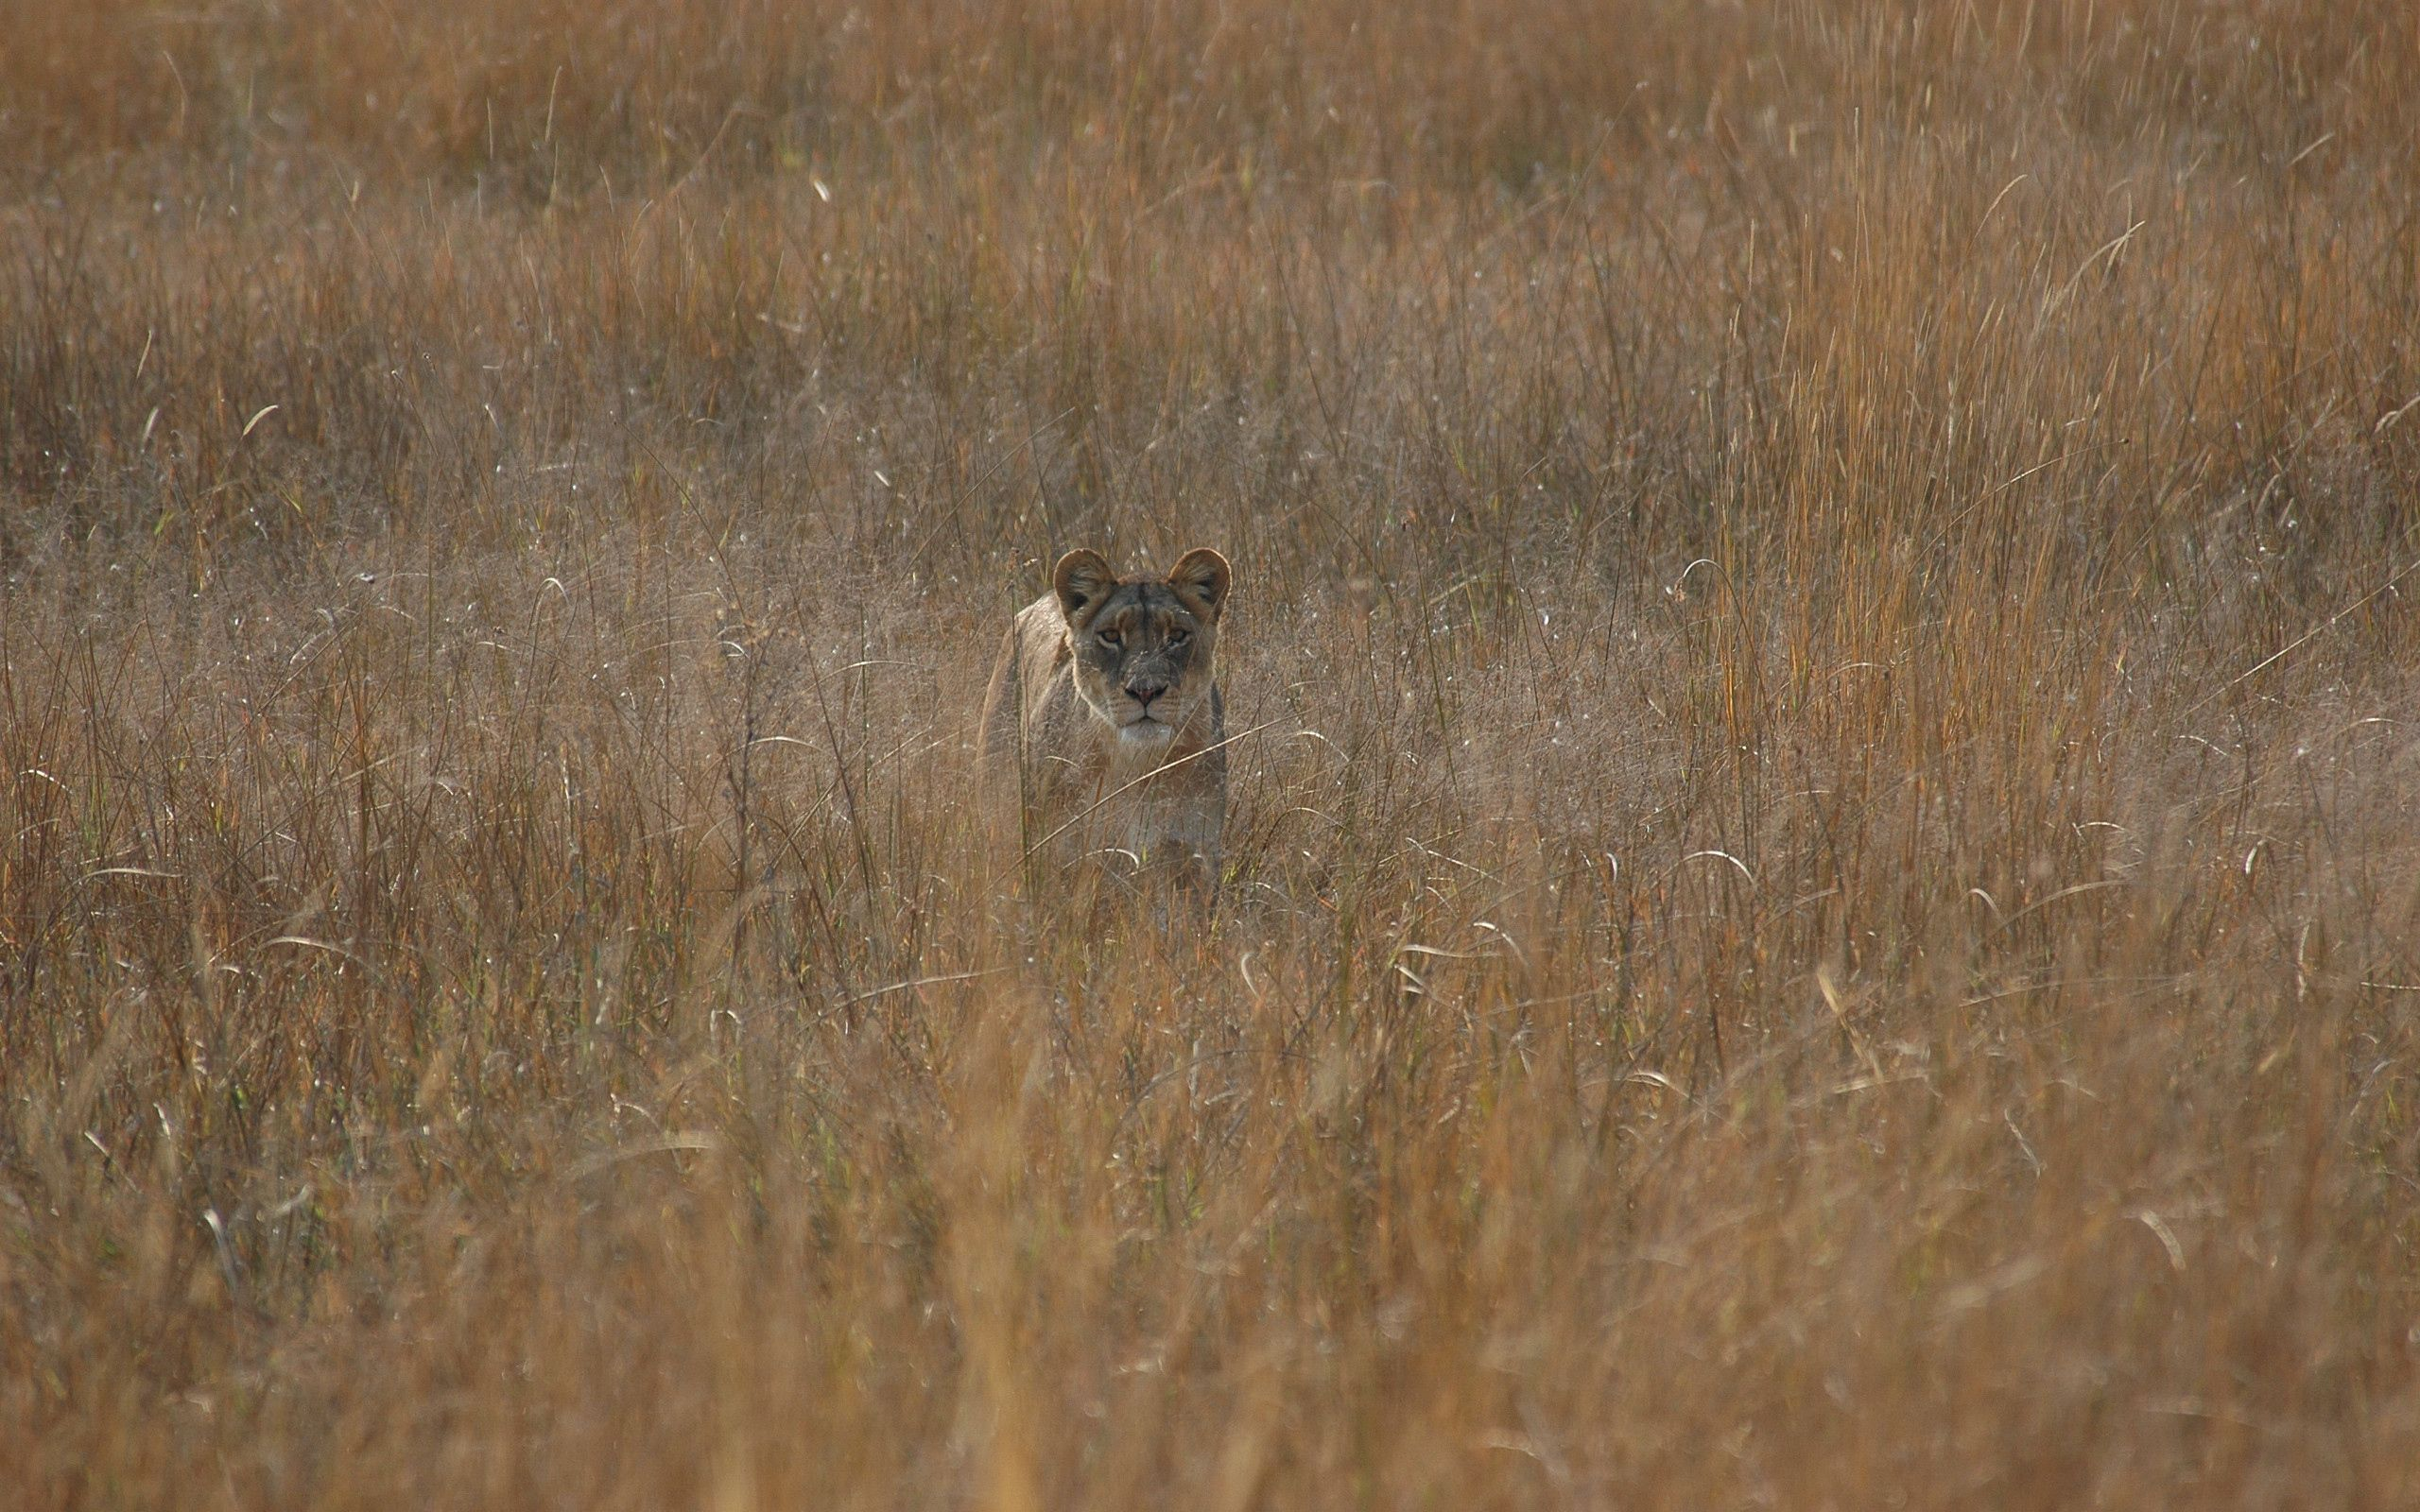 88699 download wallpaper Animals, Lioness, Field, Grass, Hunting, Hunt screensavers and pictures for free